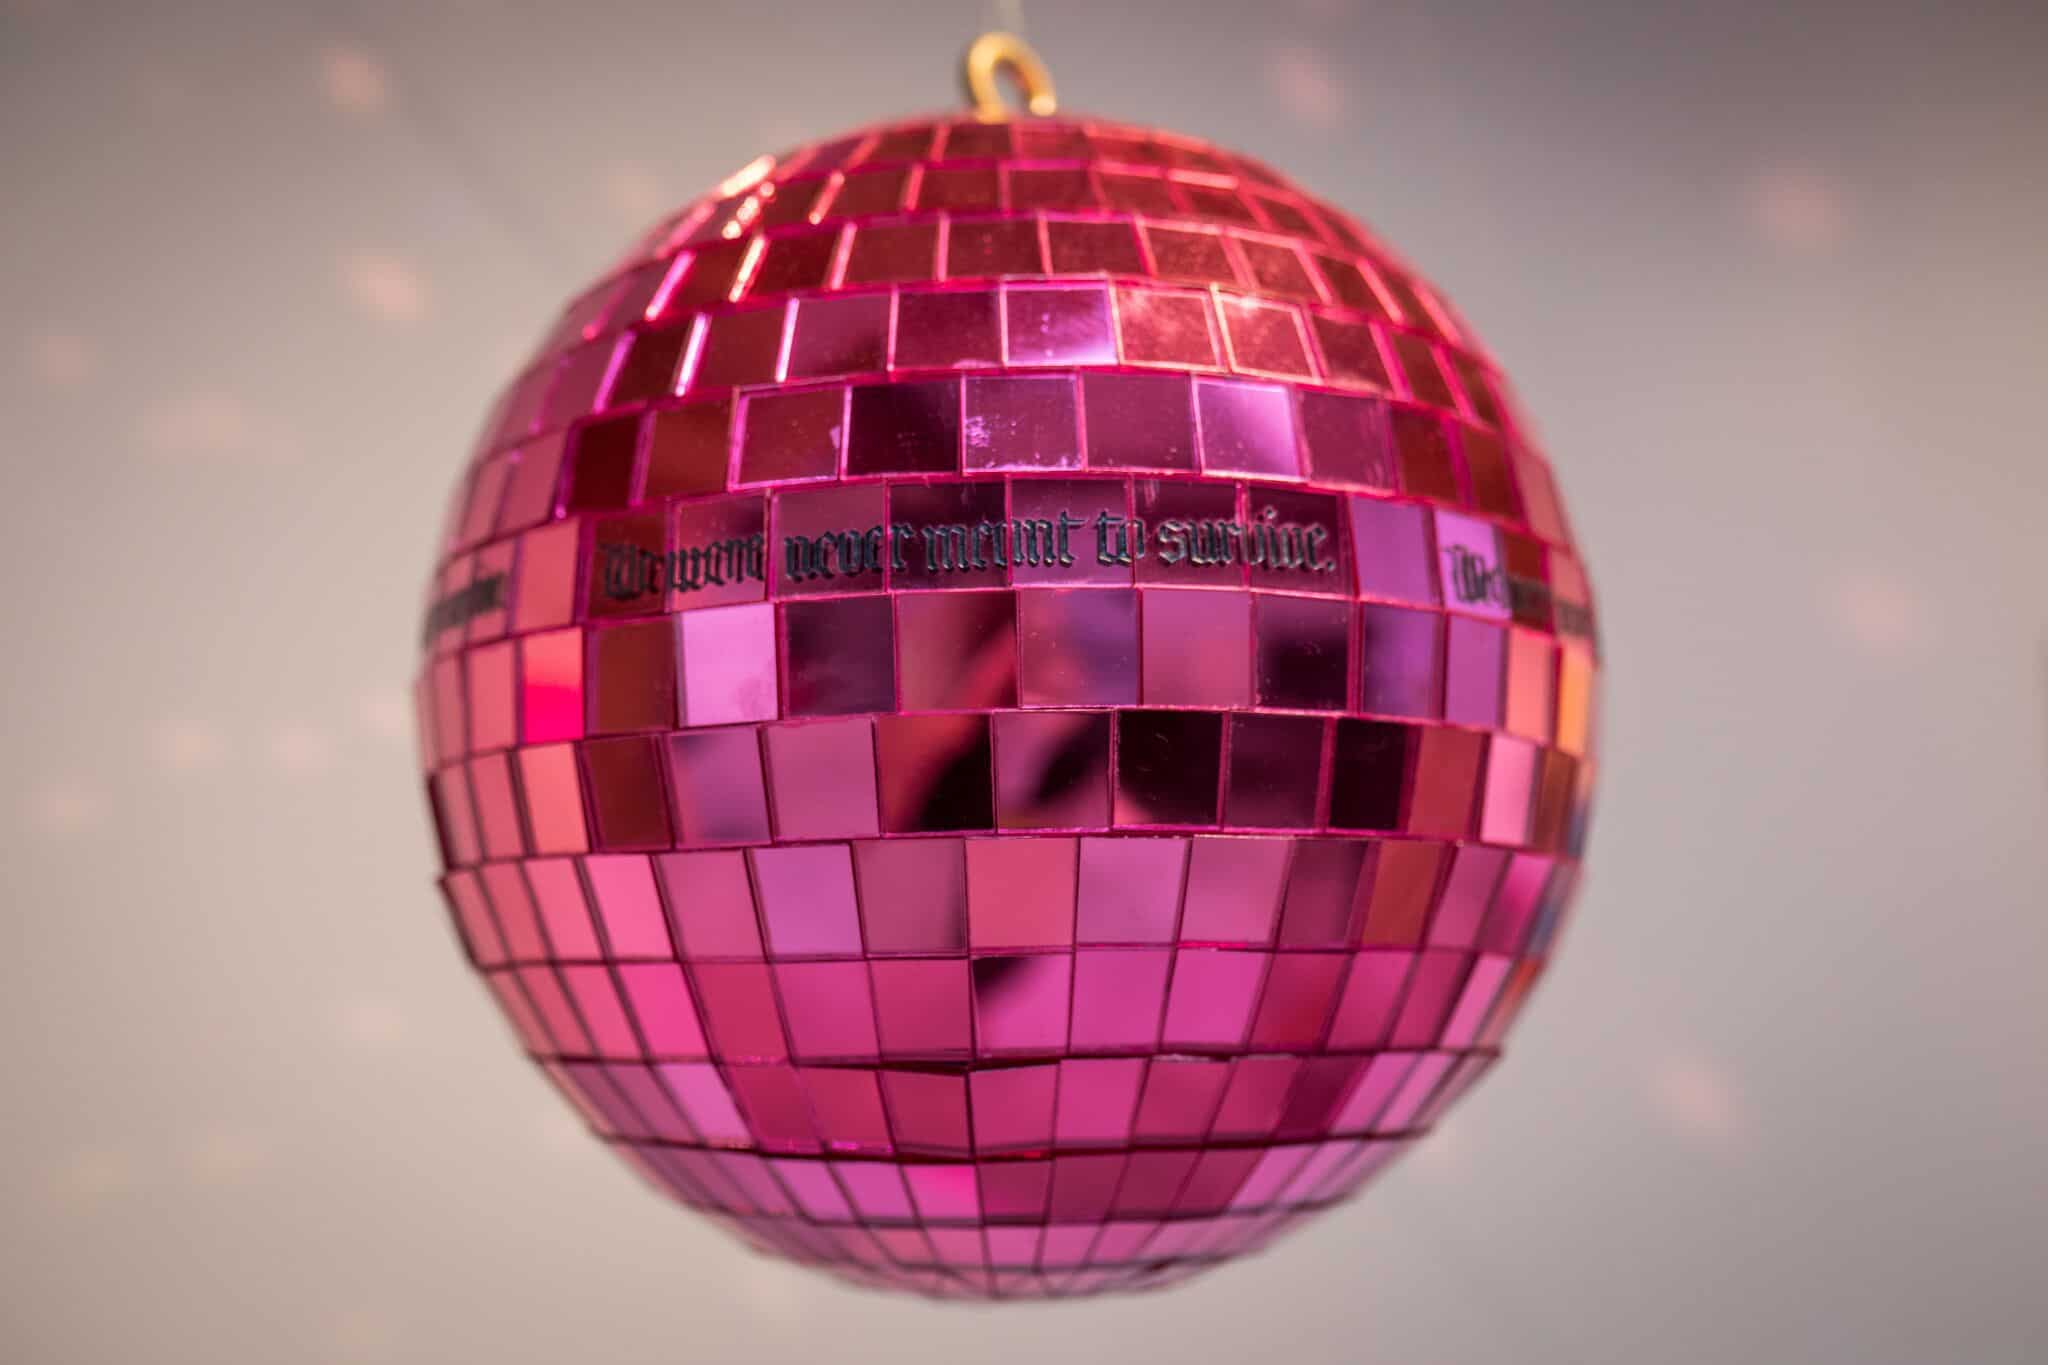 Disco ball by Eythink